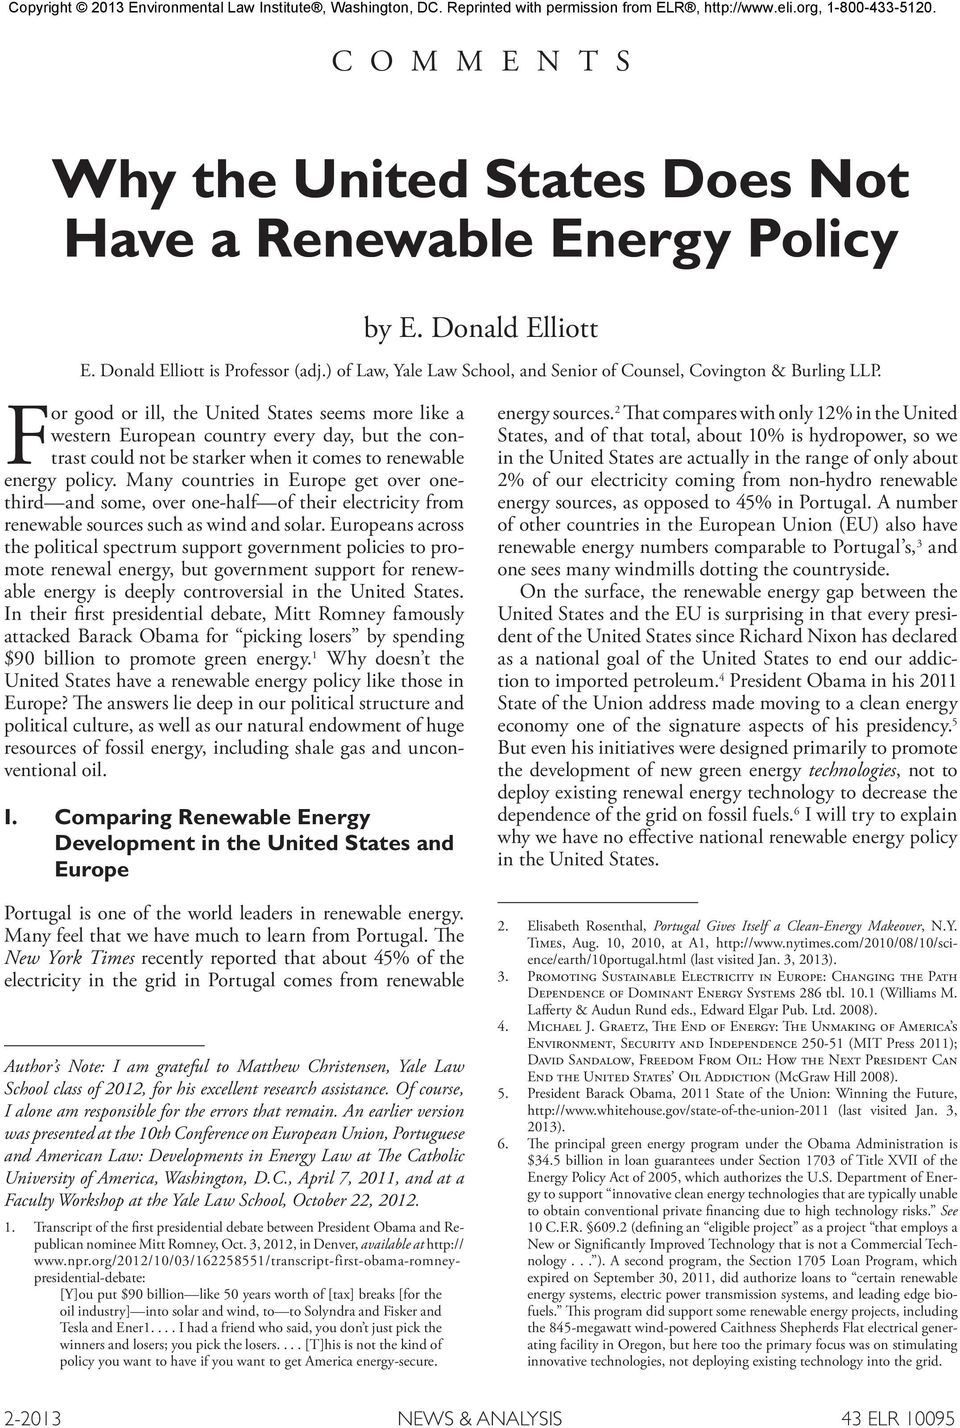 For good or ill, the United States seems more like a western European country every day, but the contrast could not be starker when it comes to renewable energy policy.